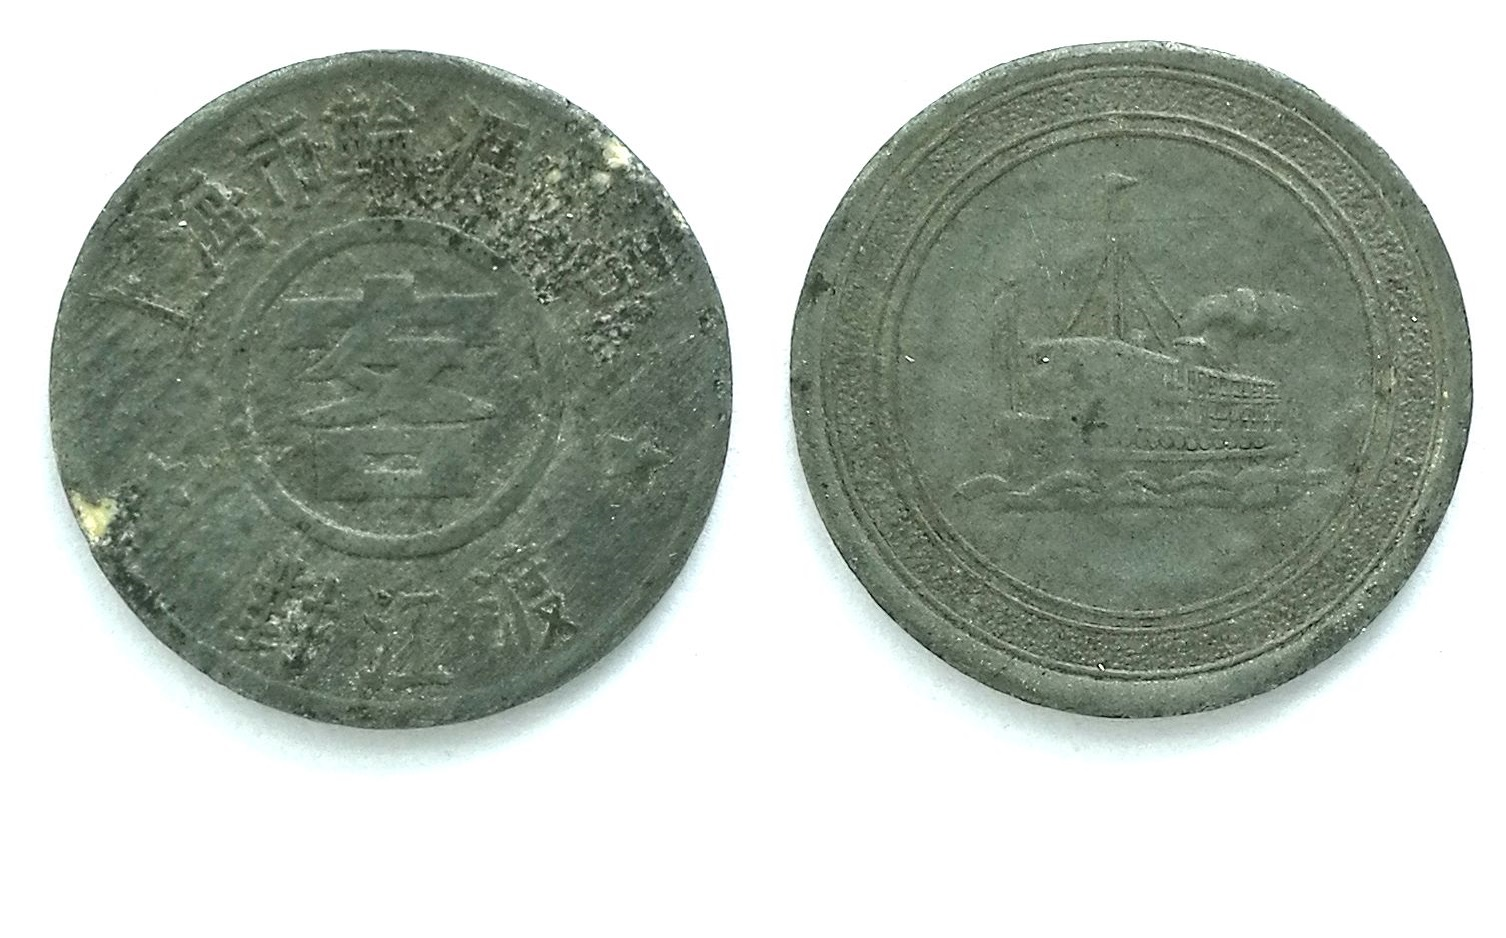 BT095, Shanghai Ferry Token, Tin, 1950's